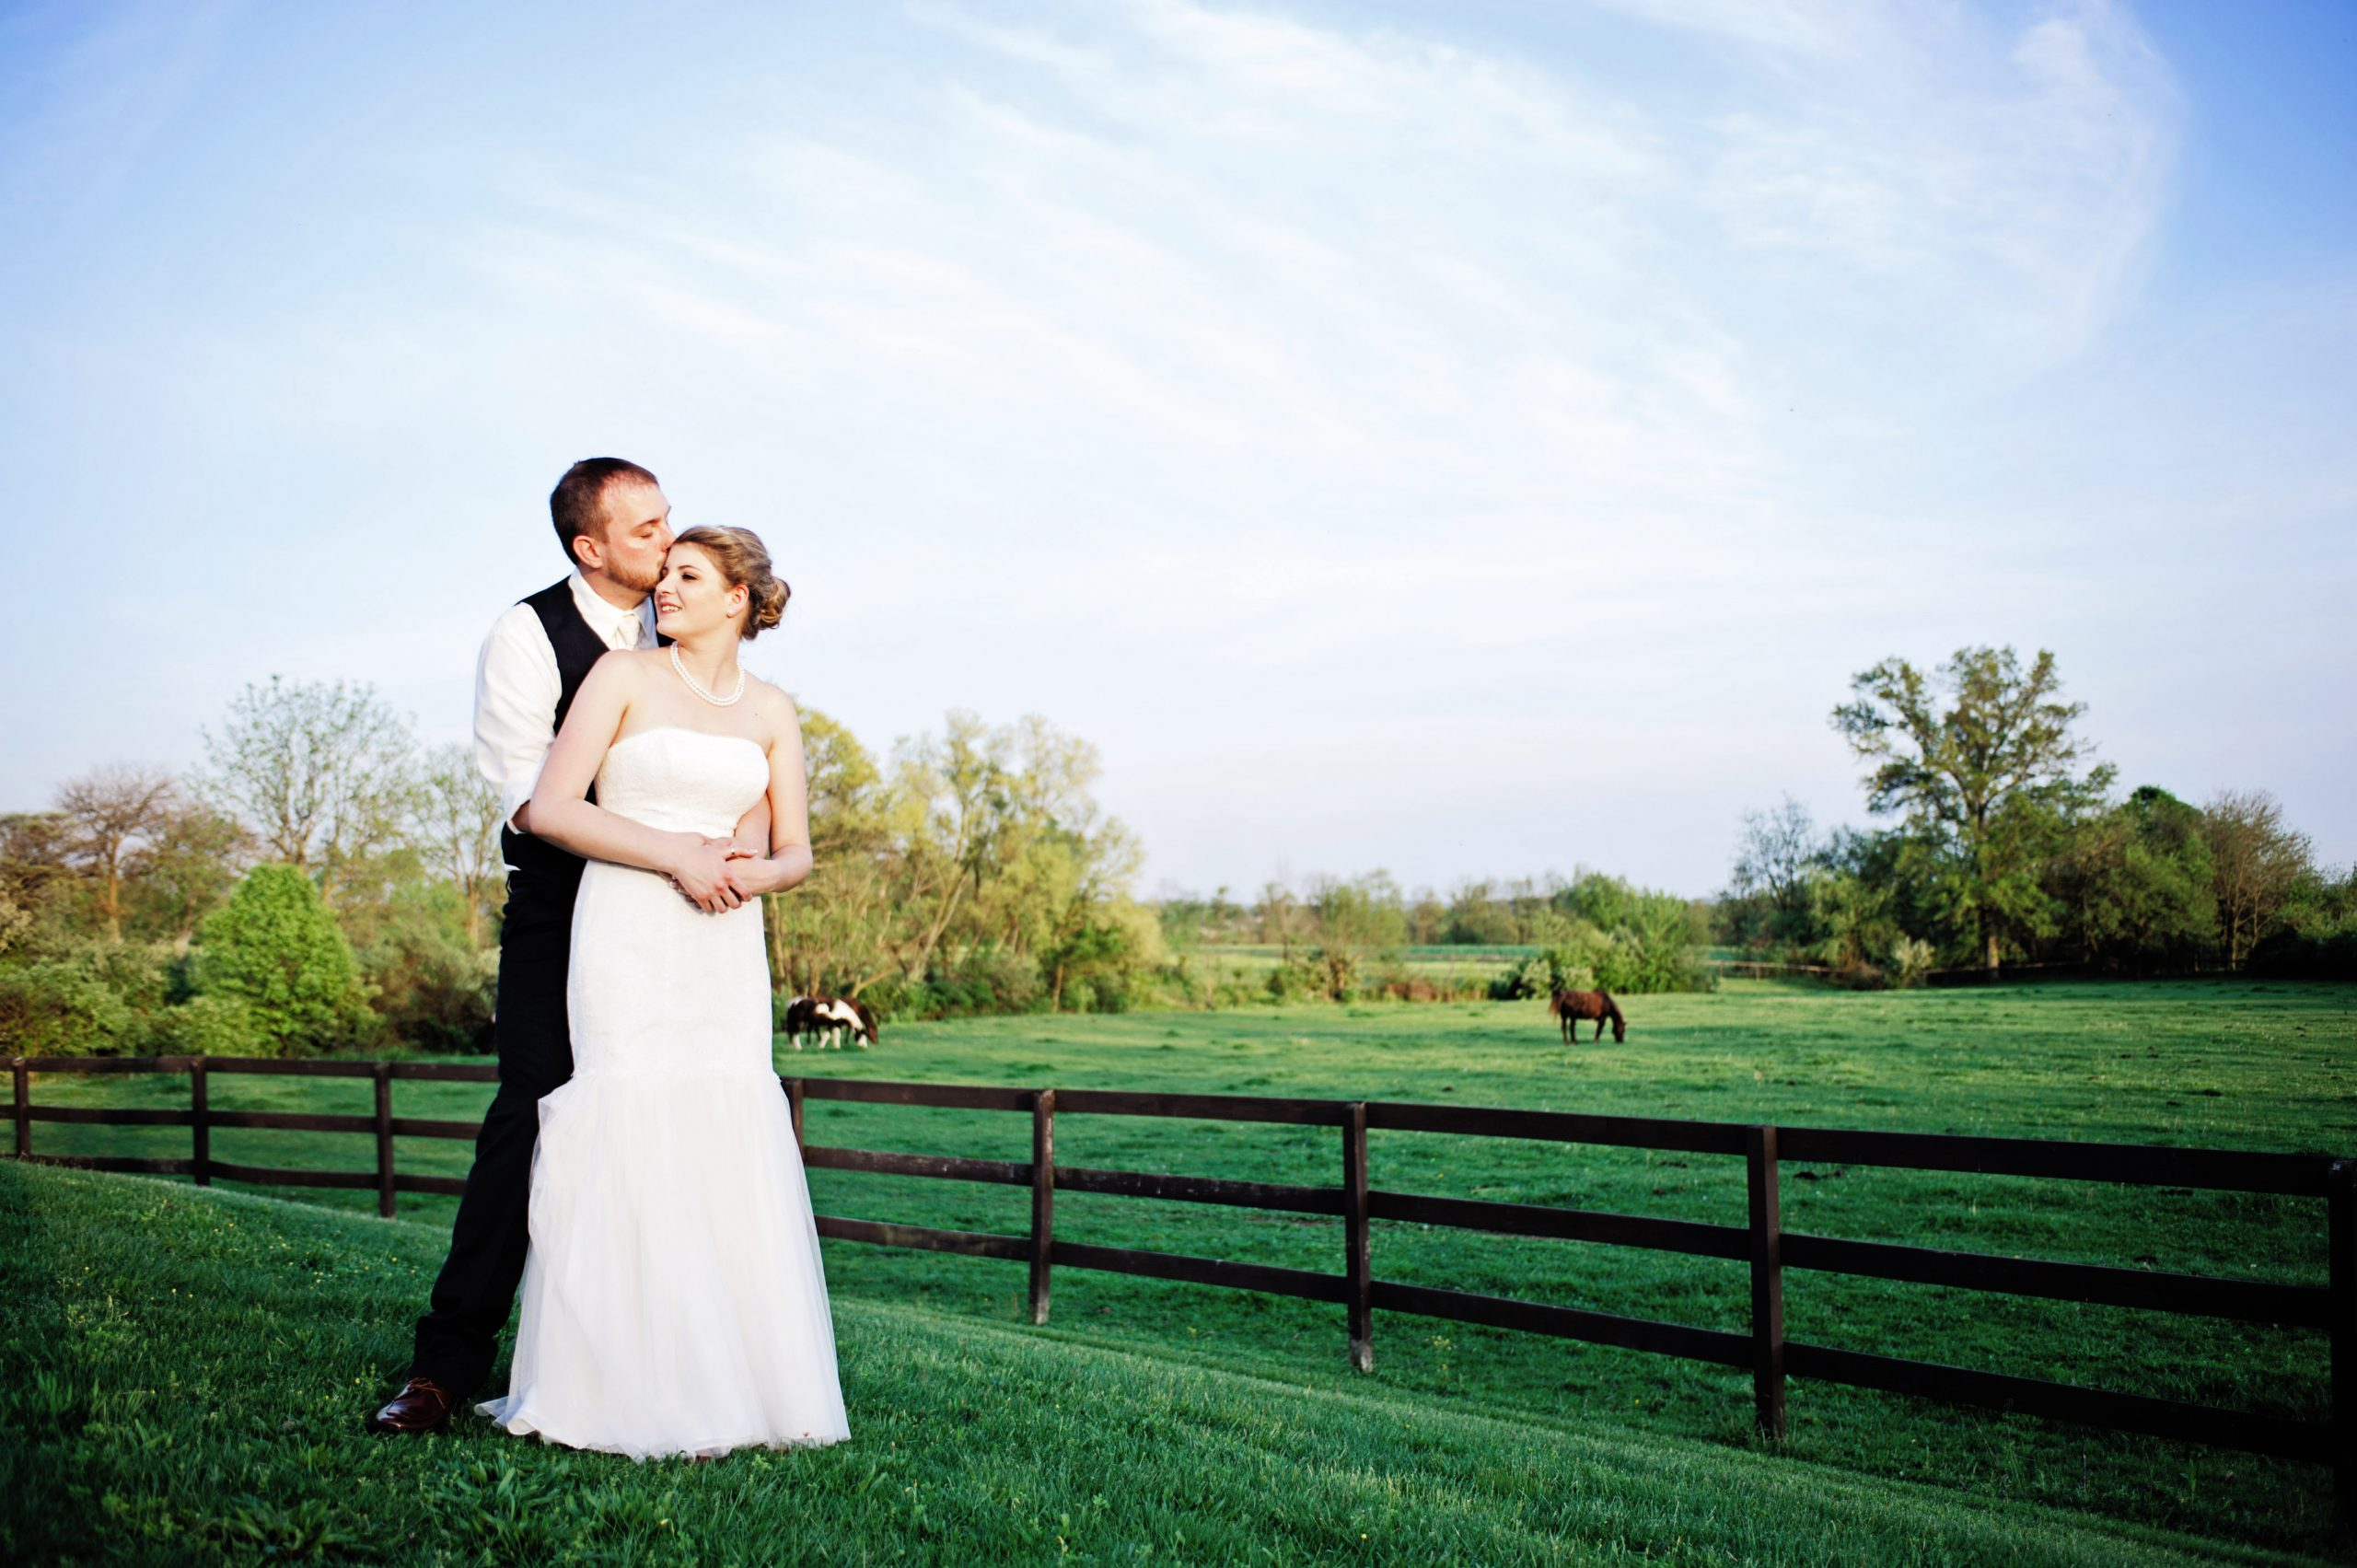 Newlyweds, Kady and Ricky warmly embrace eachother at Lakeview Farms in York, PA. Photographer, Kelsey Kinard of Lovefusion does a phenomenal job of capturing the love between the two. Featured on Dream Weddings.